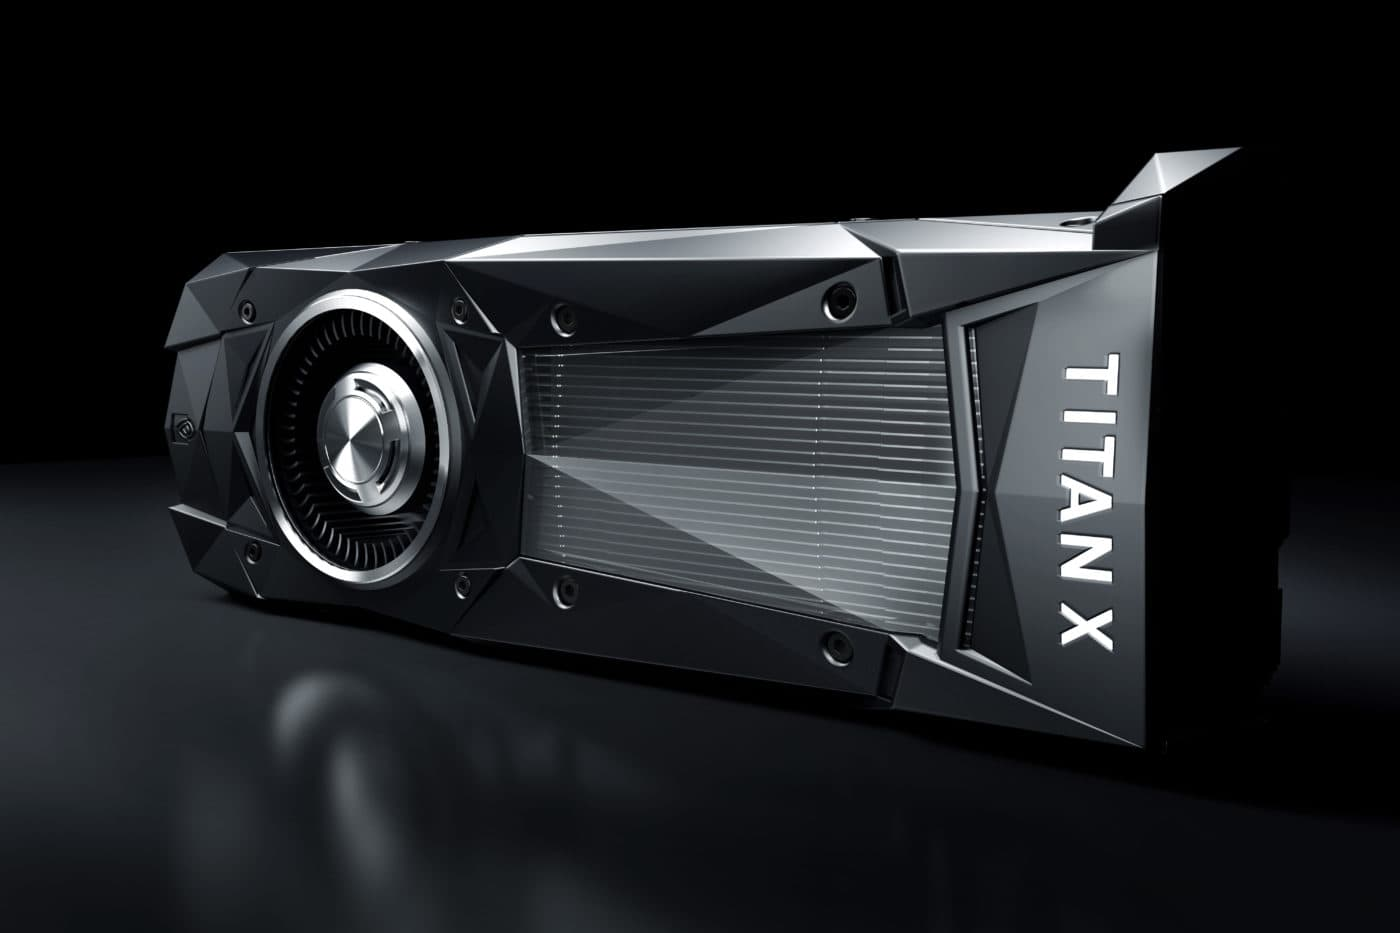 Here is What 11 TFLOPS Will Get You - New Nvidia TITAN X 4K Benchmarks